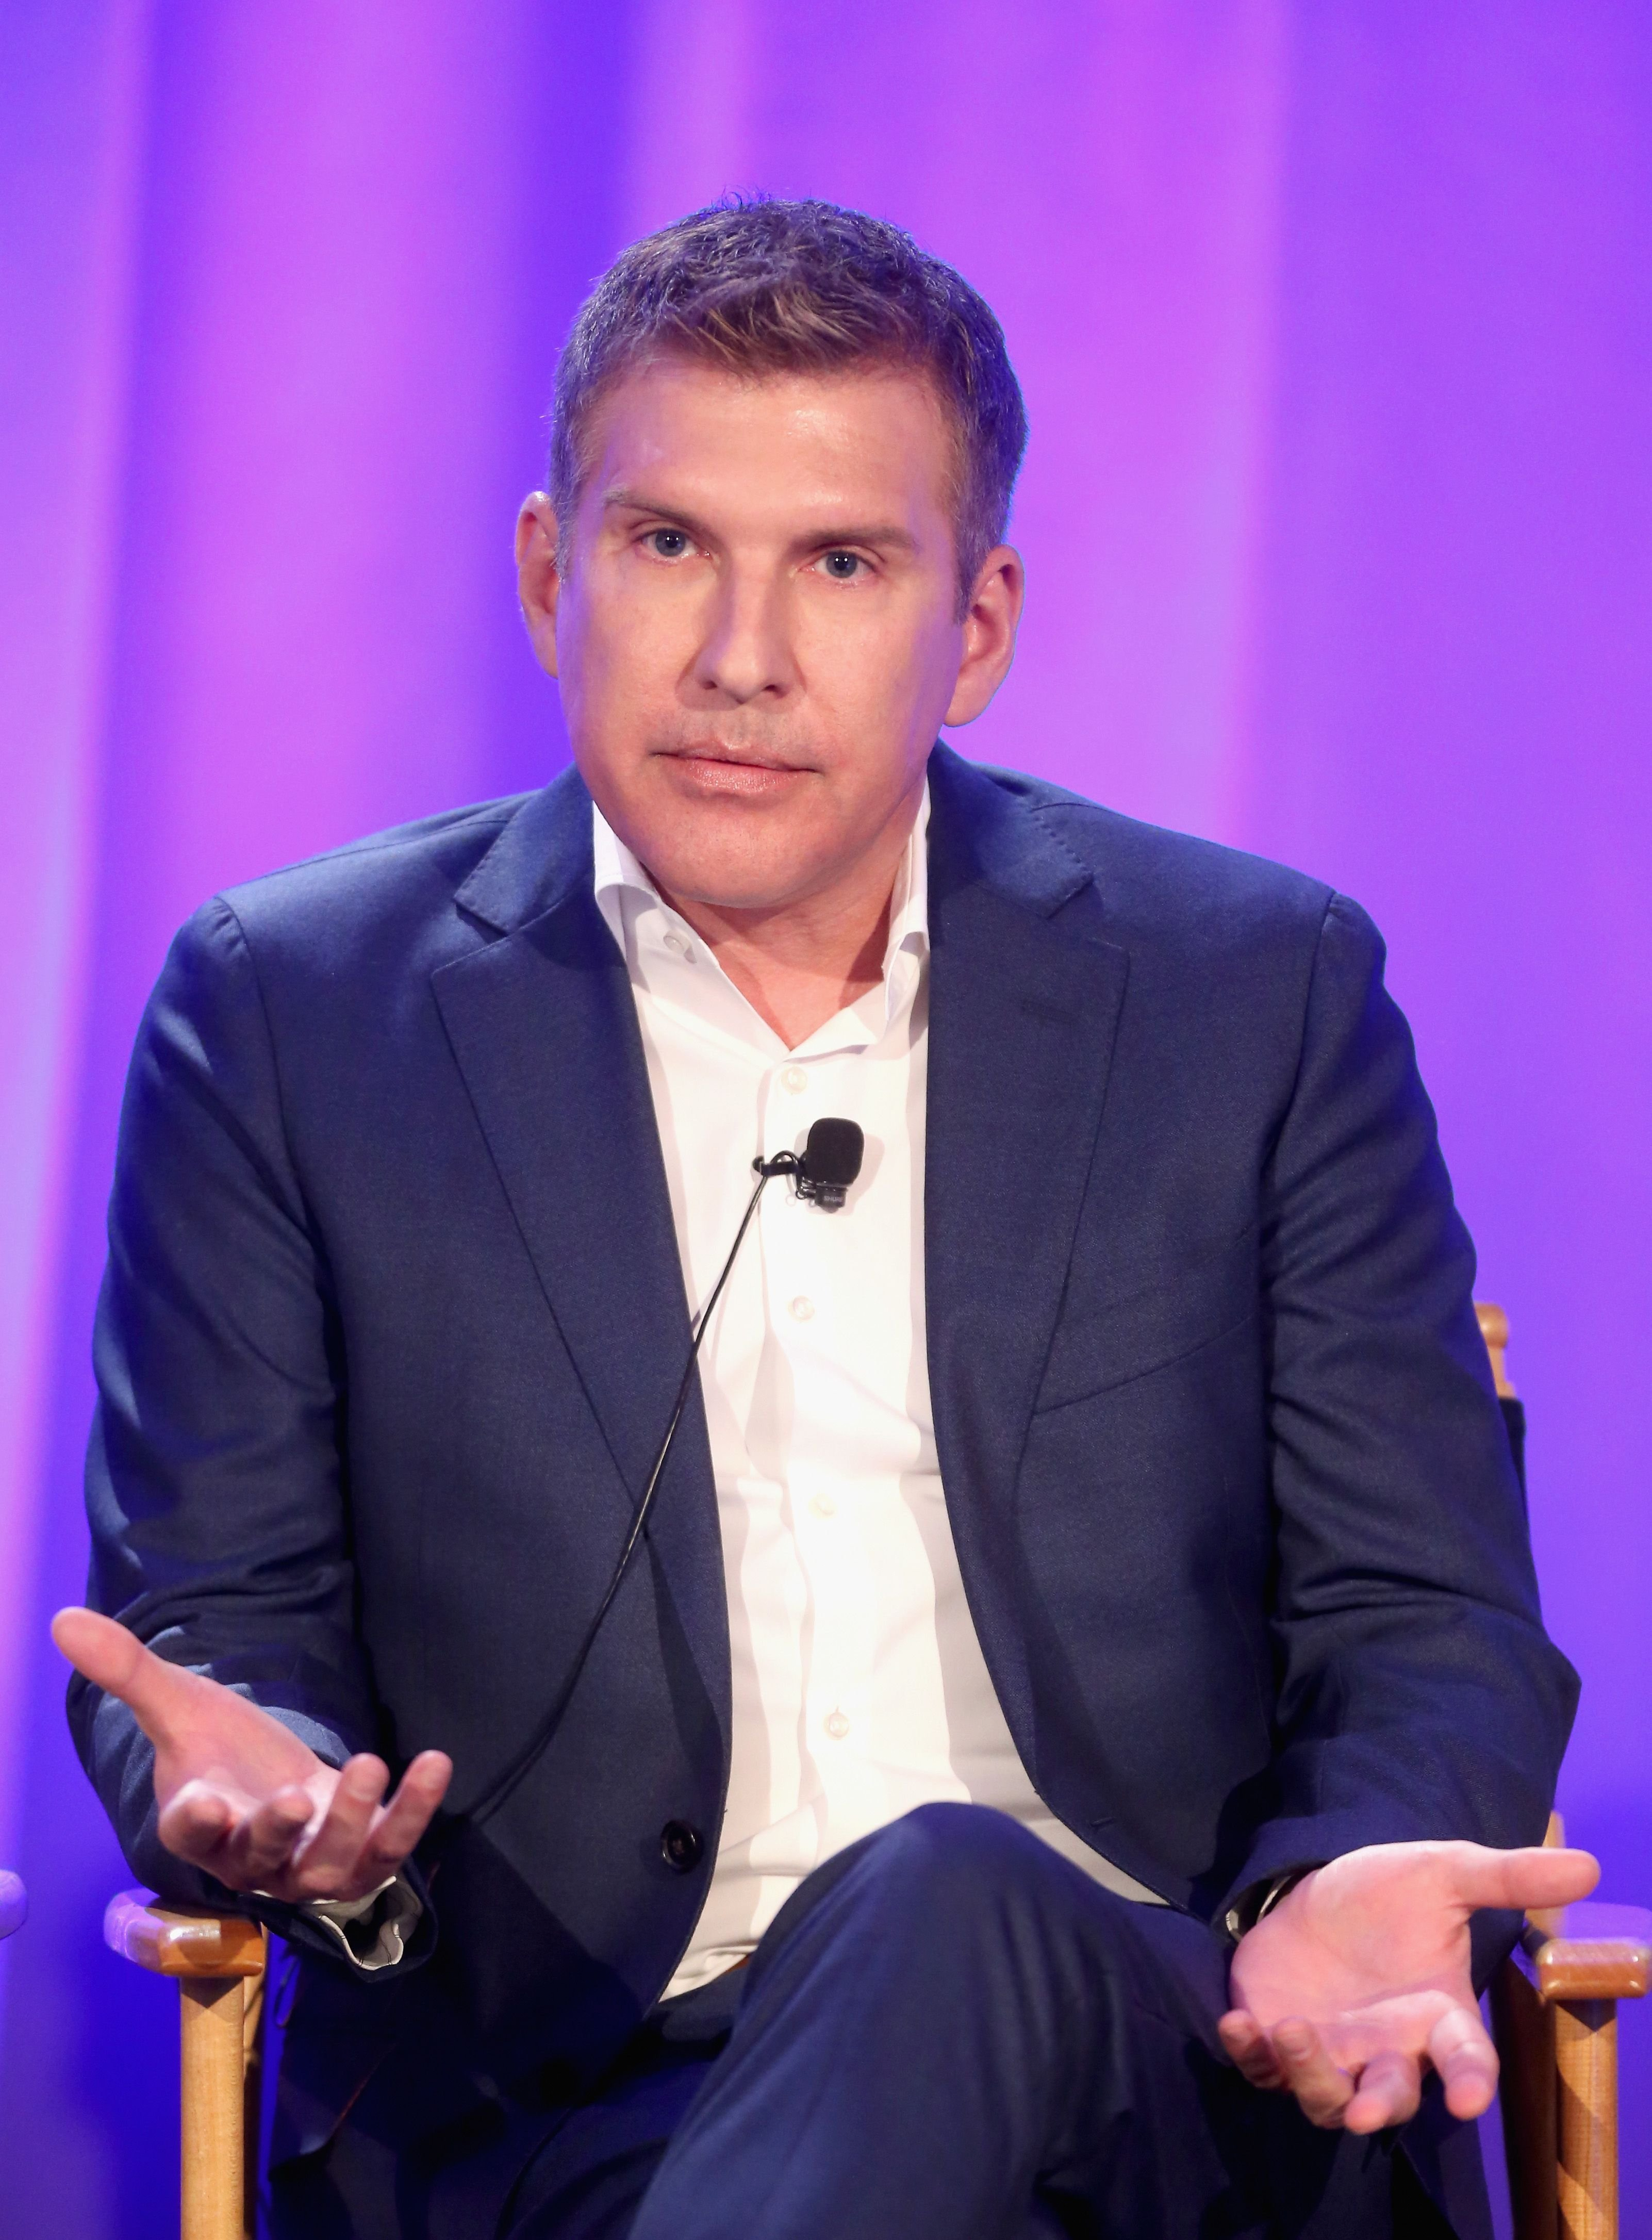 Producer/TV personality Todd Chrisley speaks onstage at the 'Chrisley Knows Best' panel at the 2016 NBCUniversal Summer Press Day at Four Seasons Hotel Westlake Village on April 1, 2016 | Photo: Getty Images